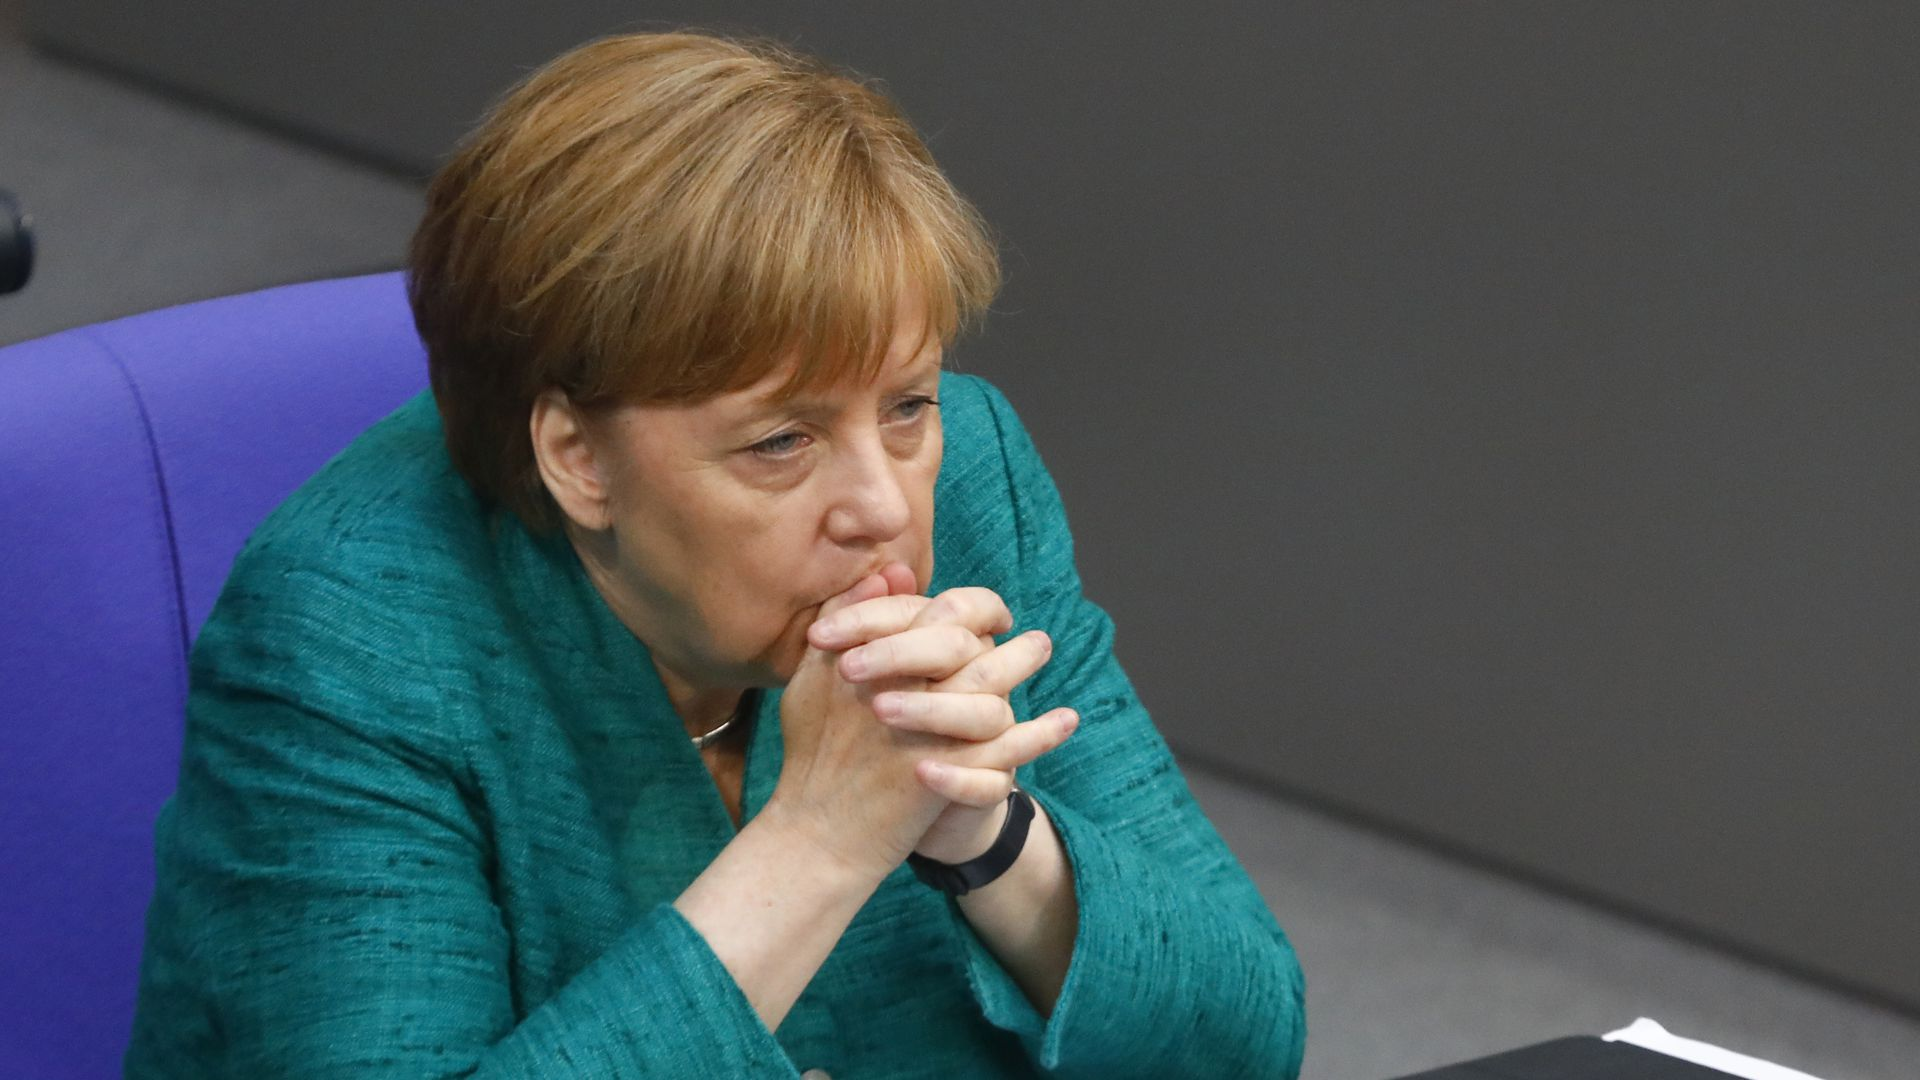 German Chancellor Angela Merkel sits down after she gave a government declaration at the Bundestag ahead of the upcoming E.U. and NATO summits on June 28, 2018 in Berlin, Germany.